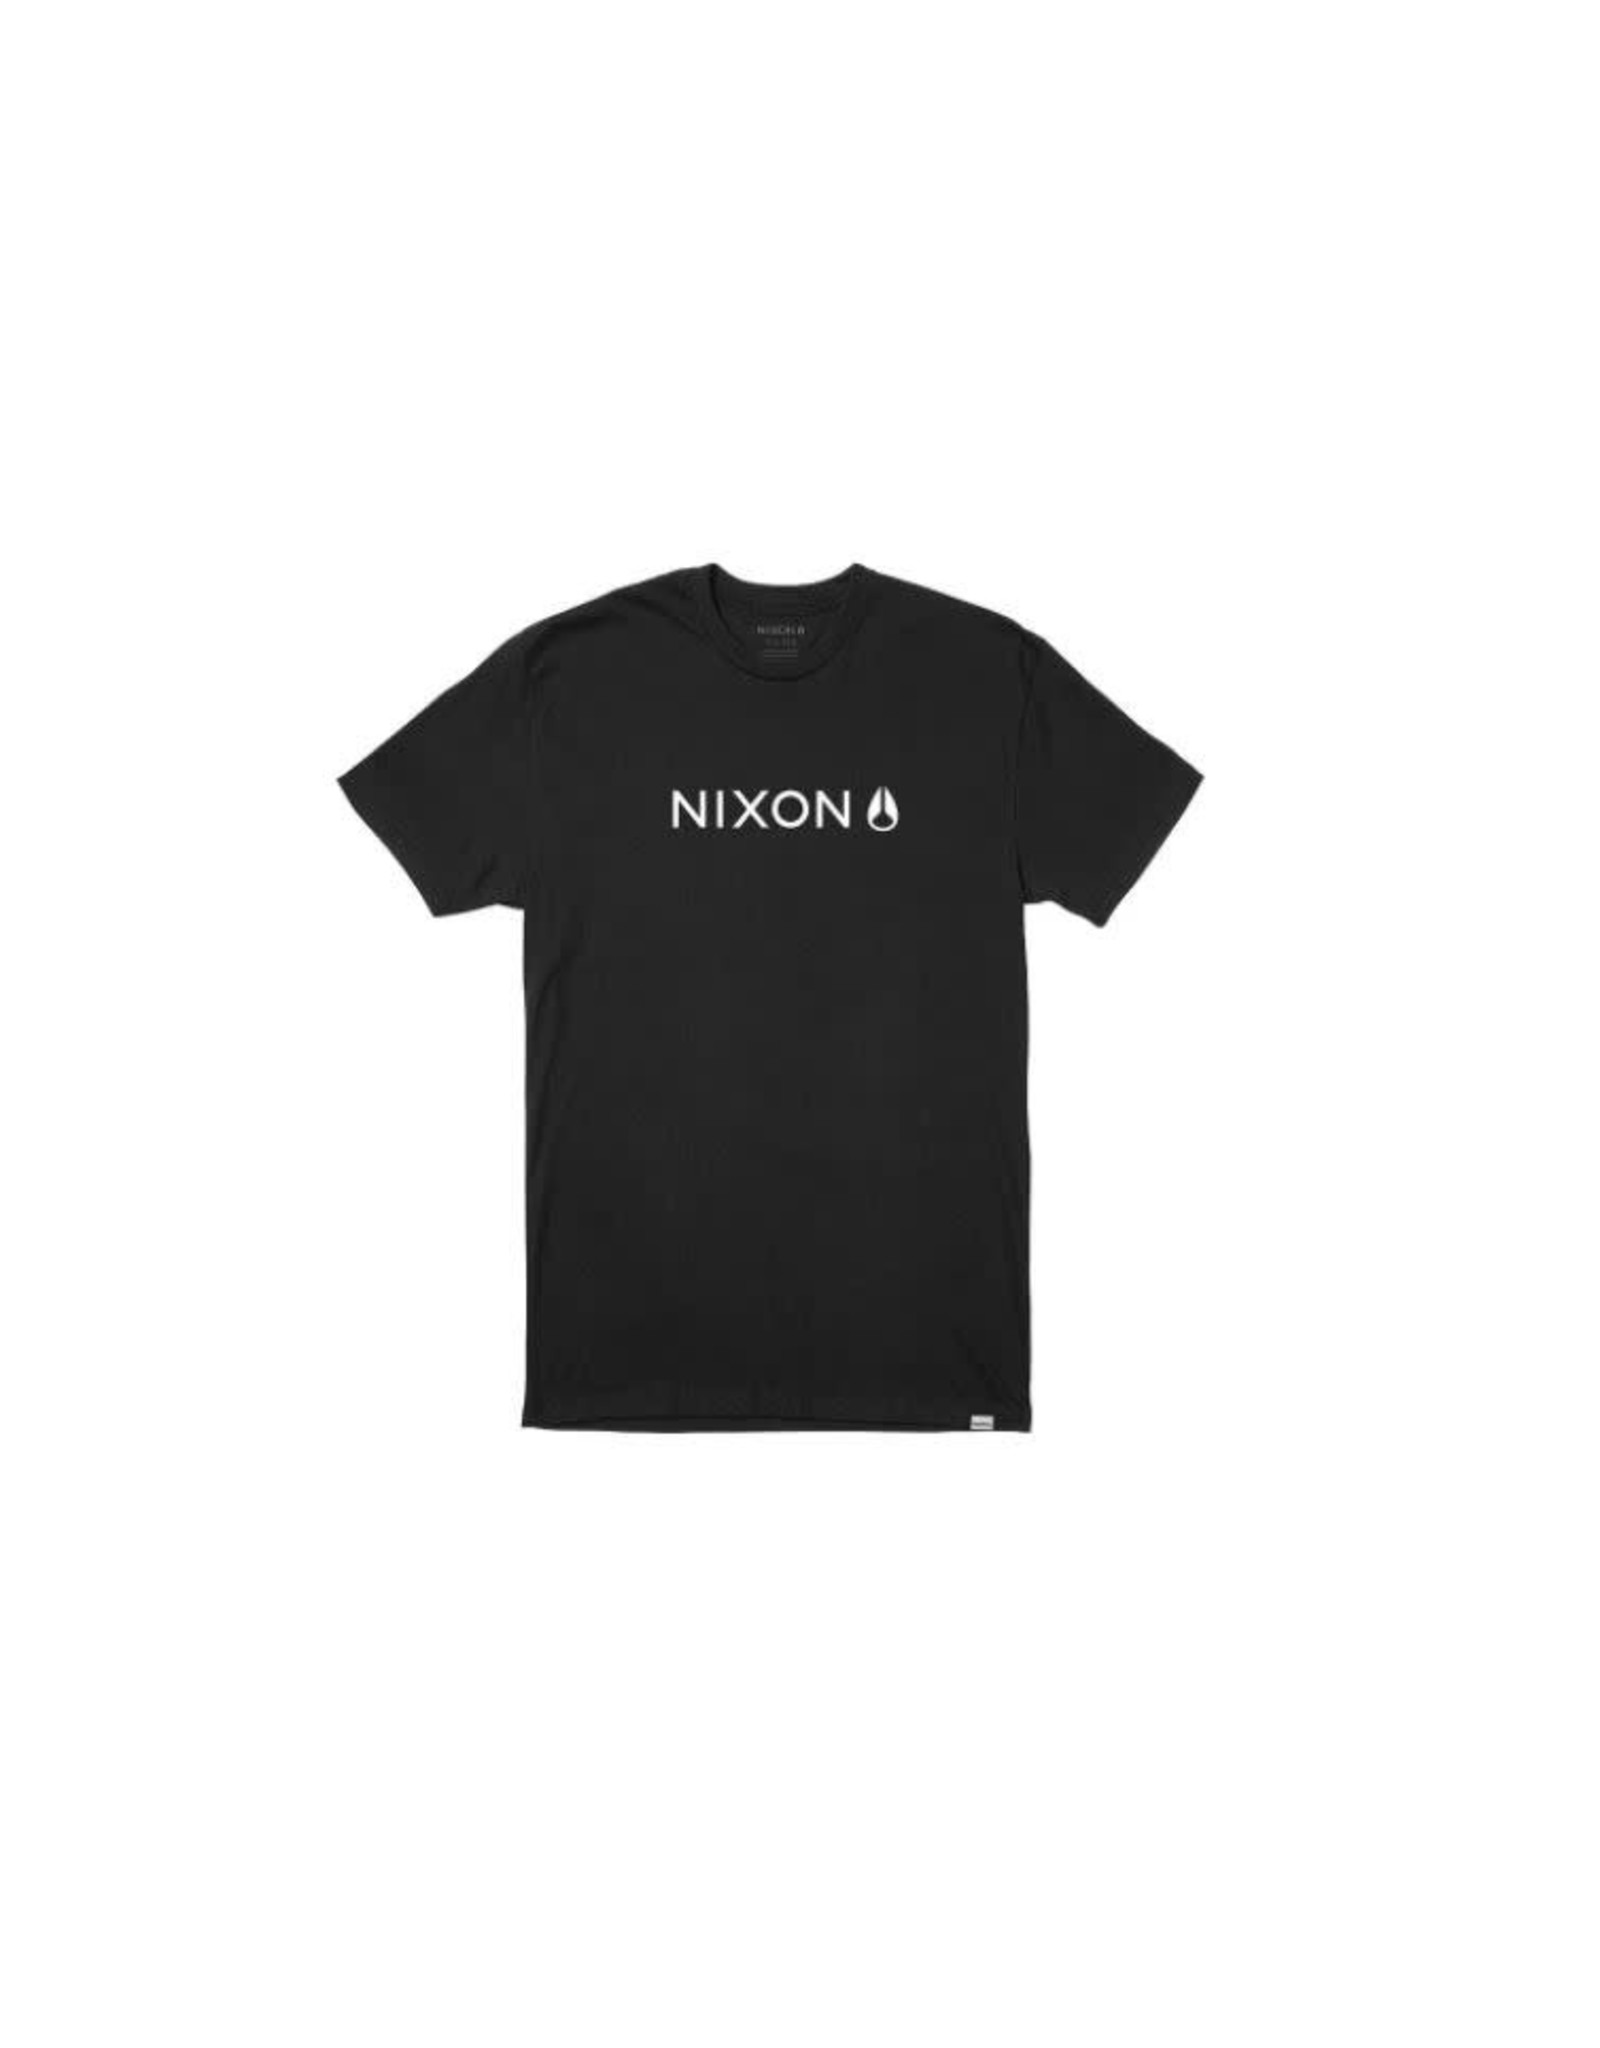 nixon Nixon - T-shirt homme basis-r black